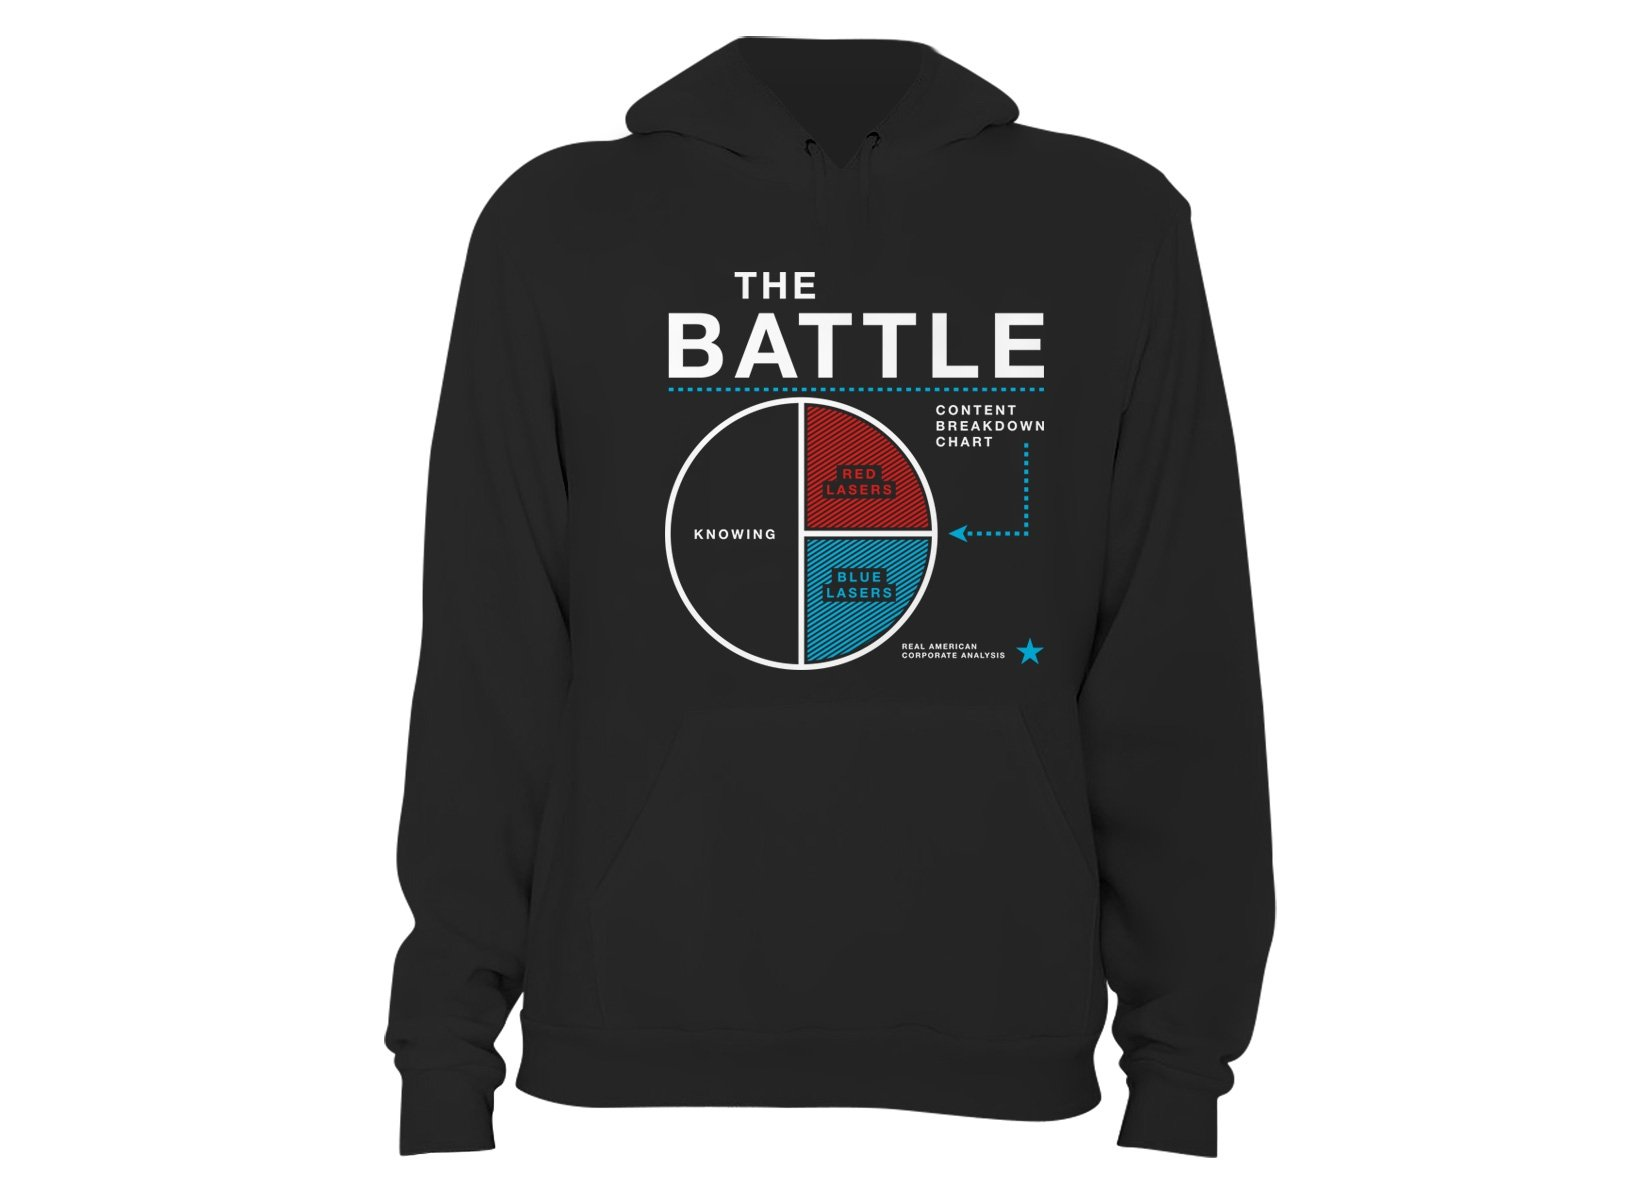 The Battle on Hoodie